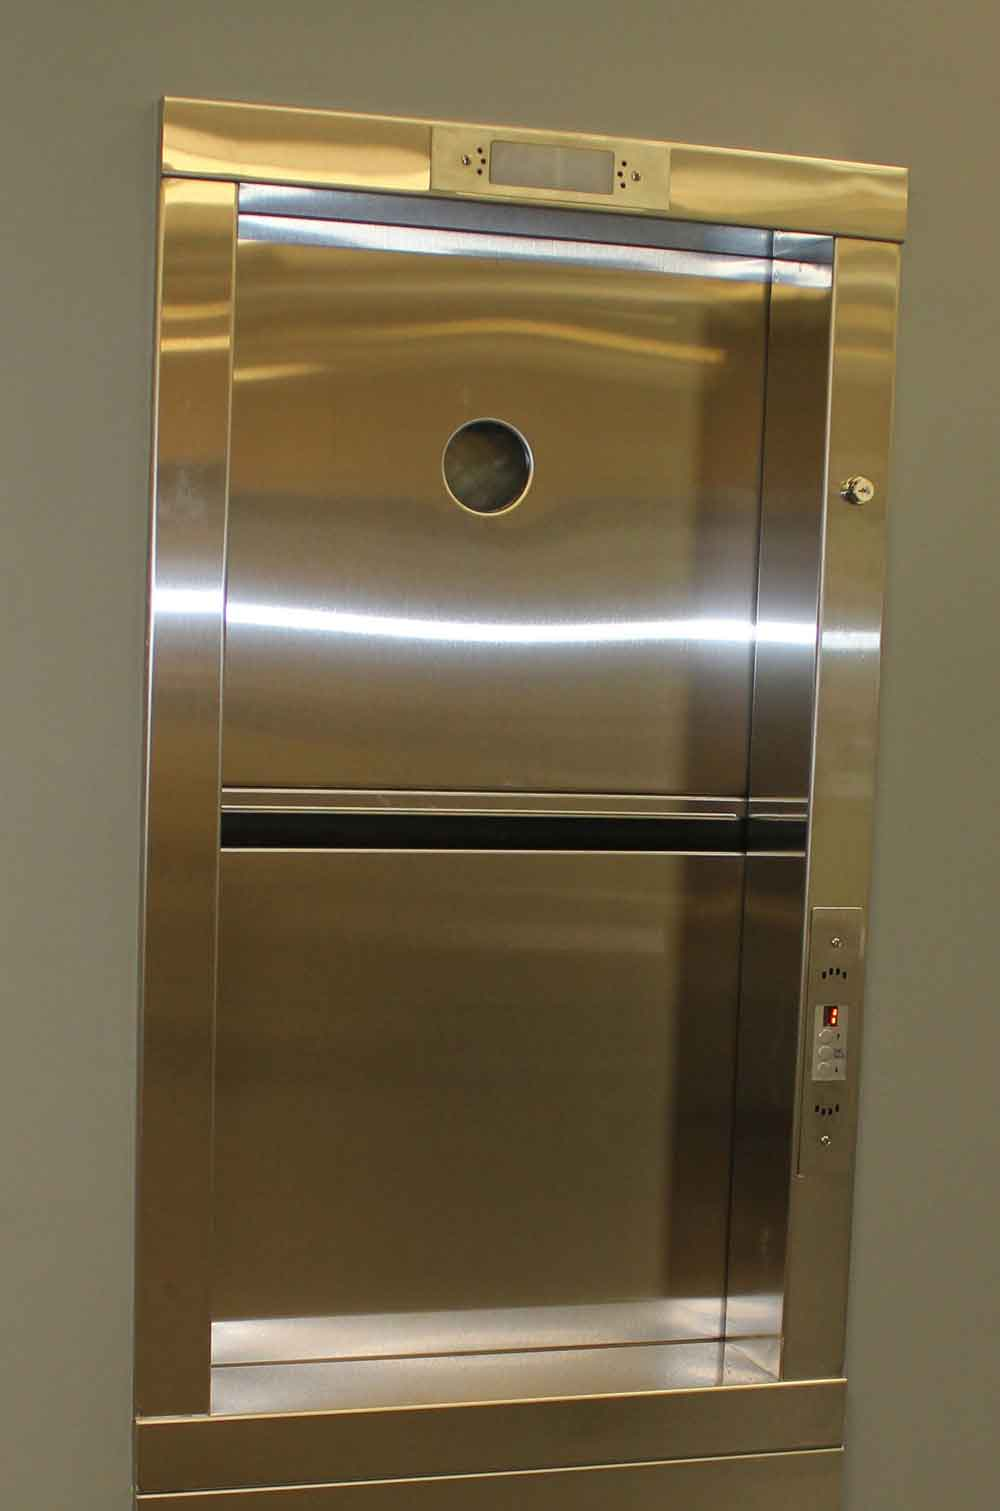 Restaurant dumbwaiter elevators nationwide lifts